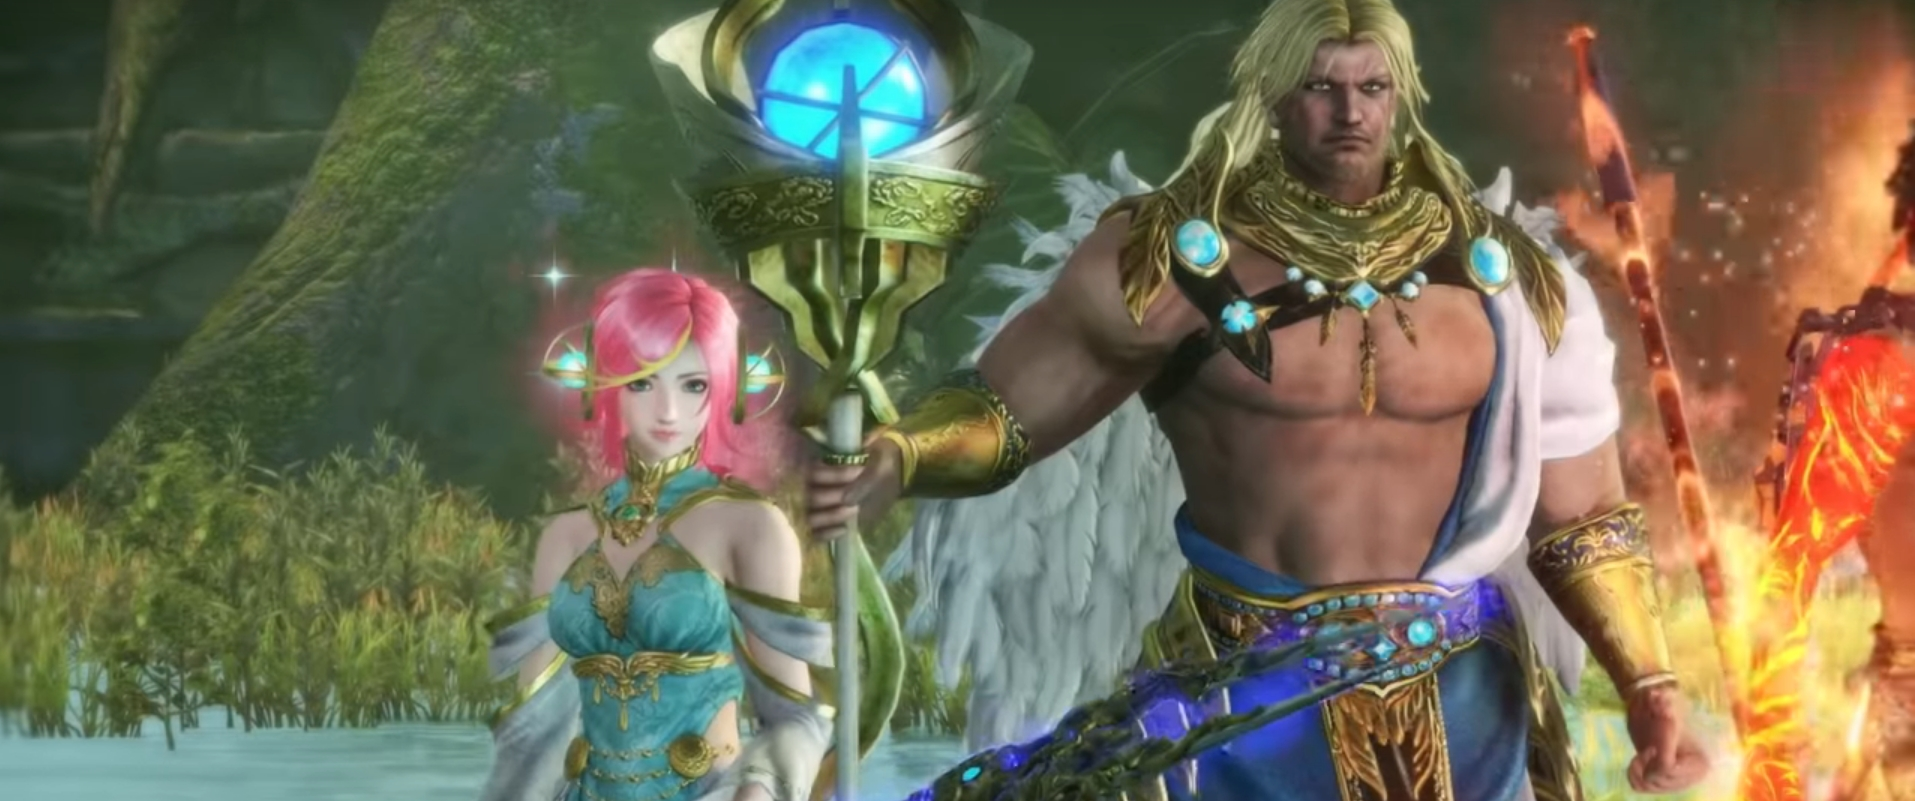 Second Warriors Orochi 4 Ultimate Trailer Showcases New Characters And Battles